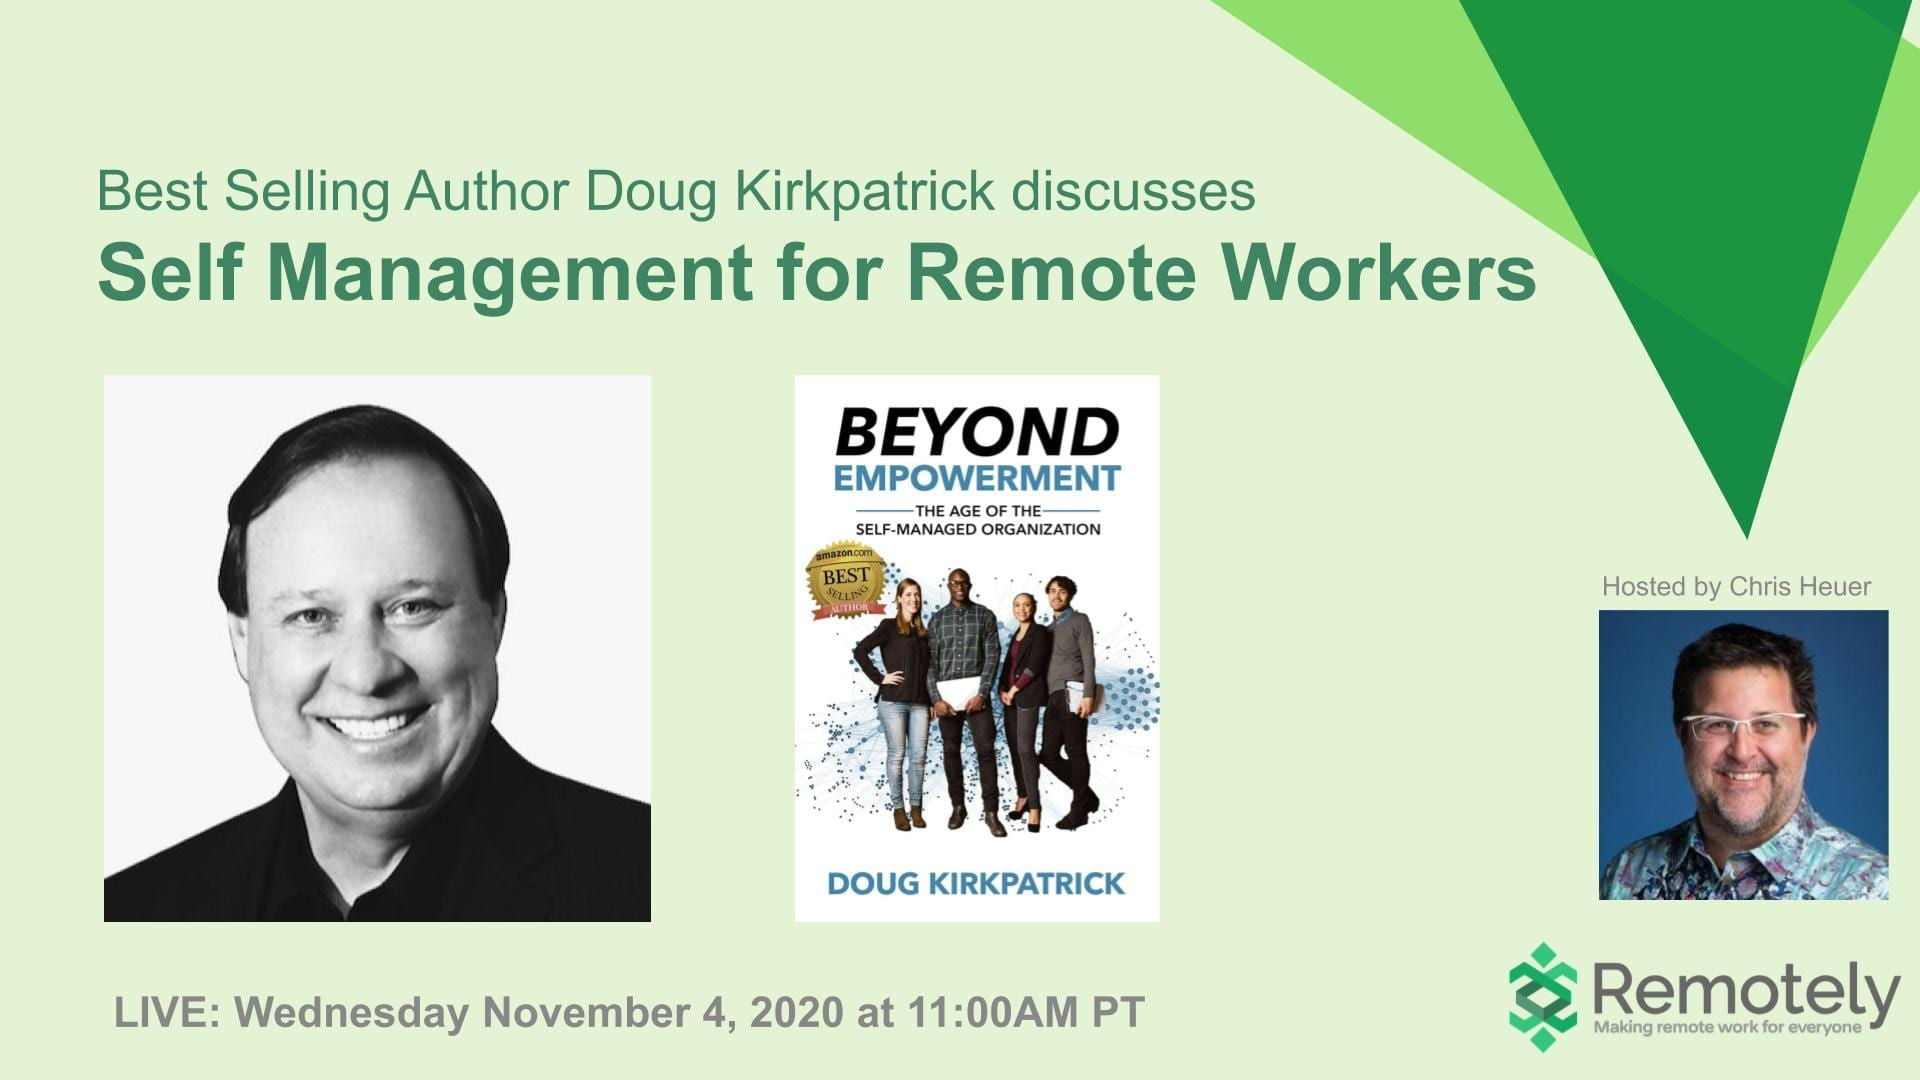 Doug Kirkpatrick - Self Management for Remote Workers